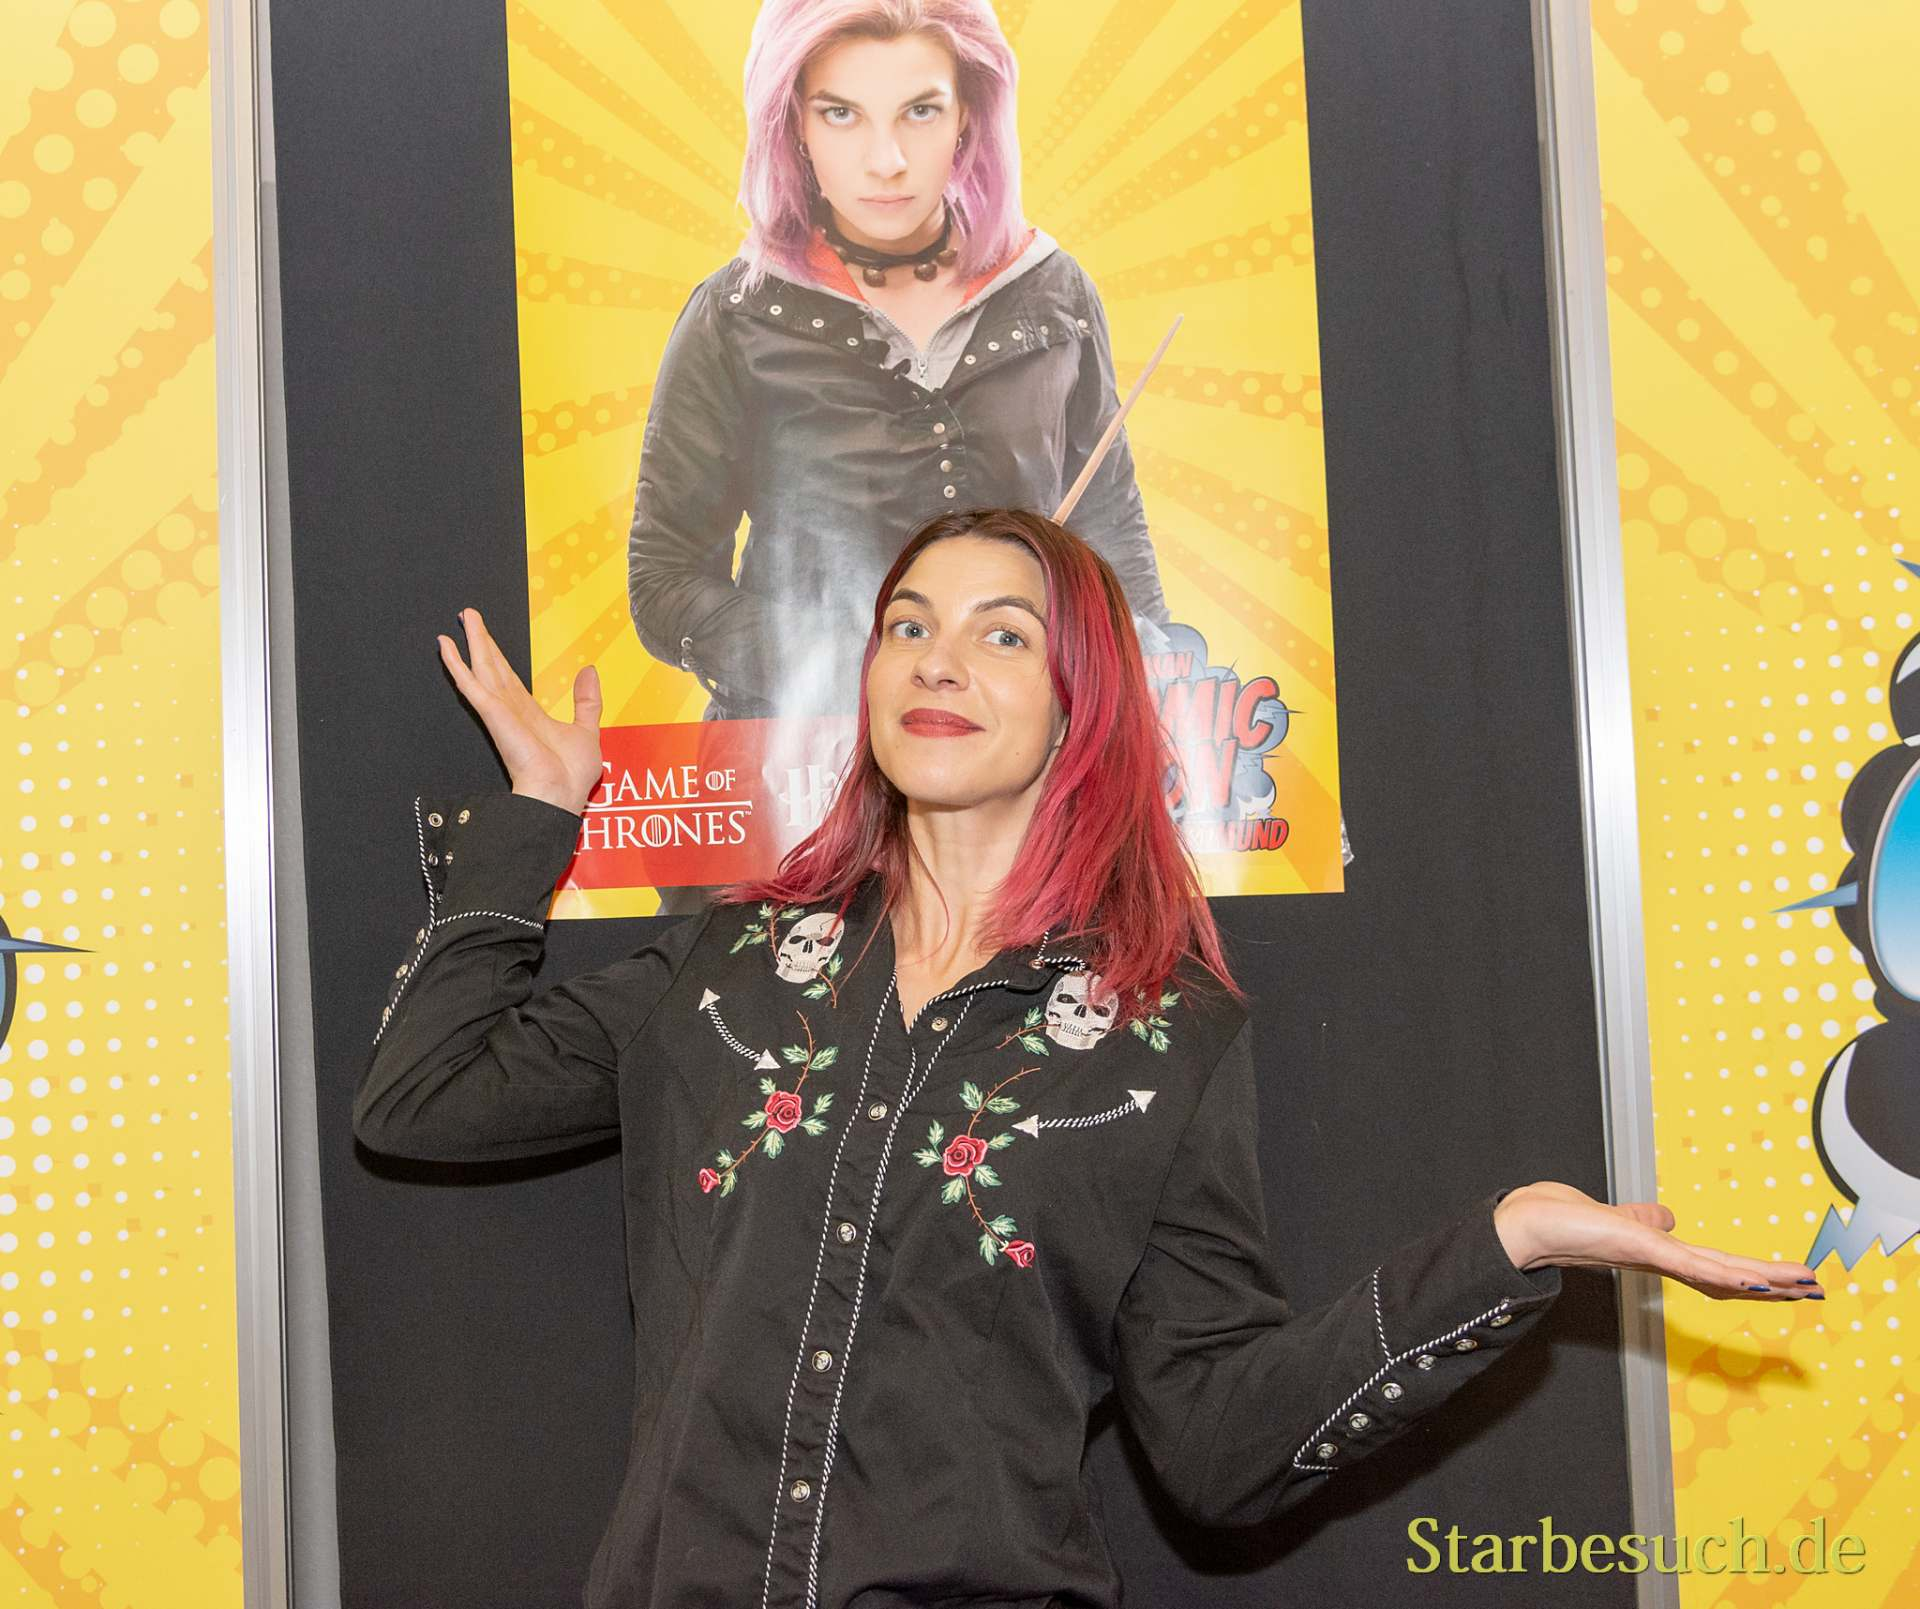 DORTMUND, GERMANY - December 1st 2018: Natalia Tena (*1984, English actress) at German Comic Con Dortmund, a two day fan convention